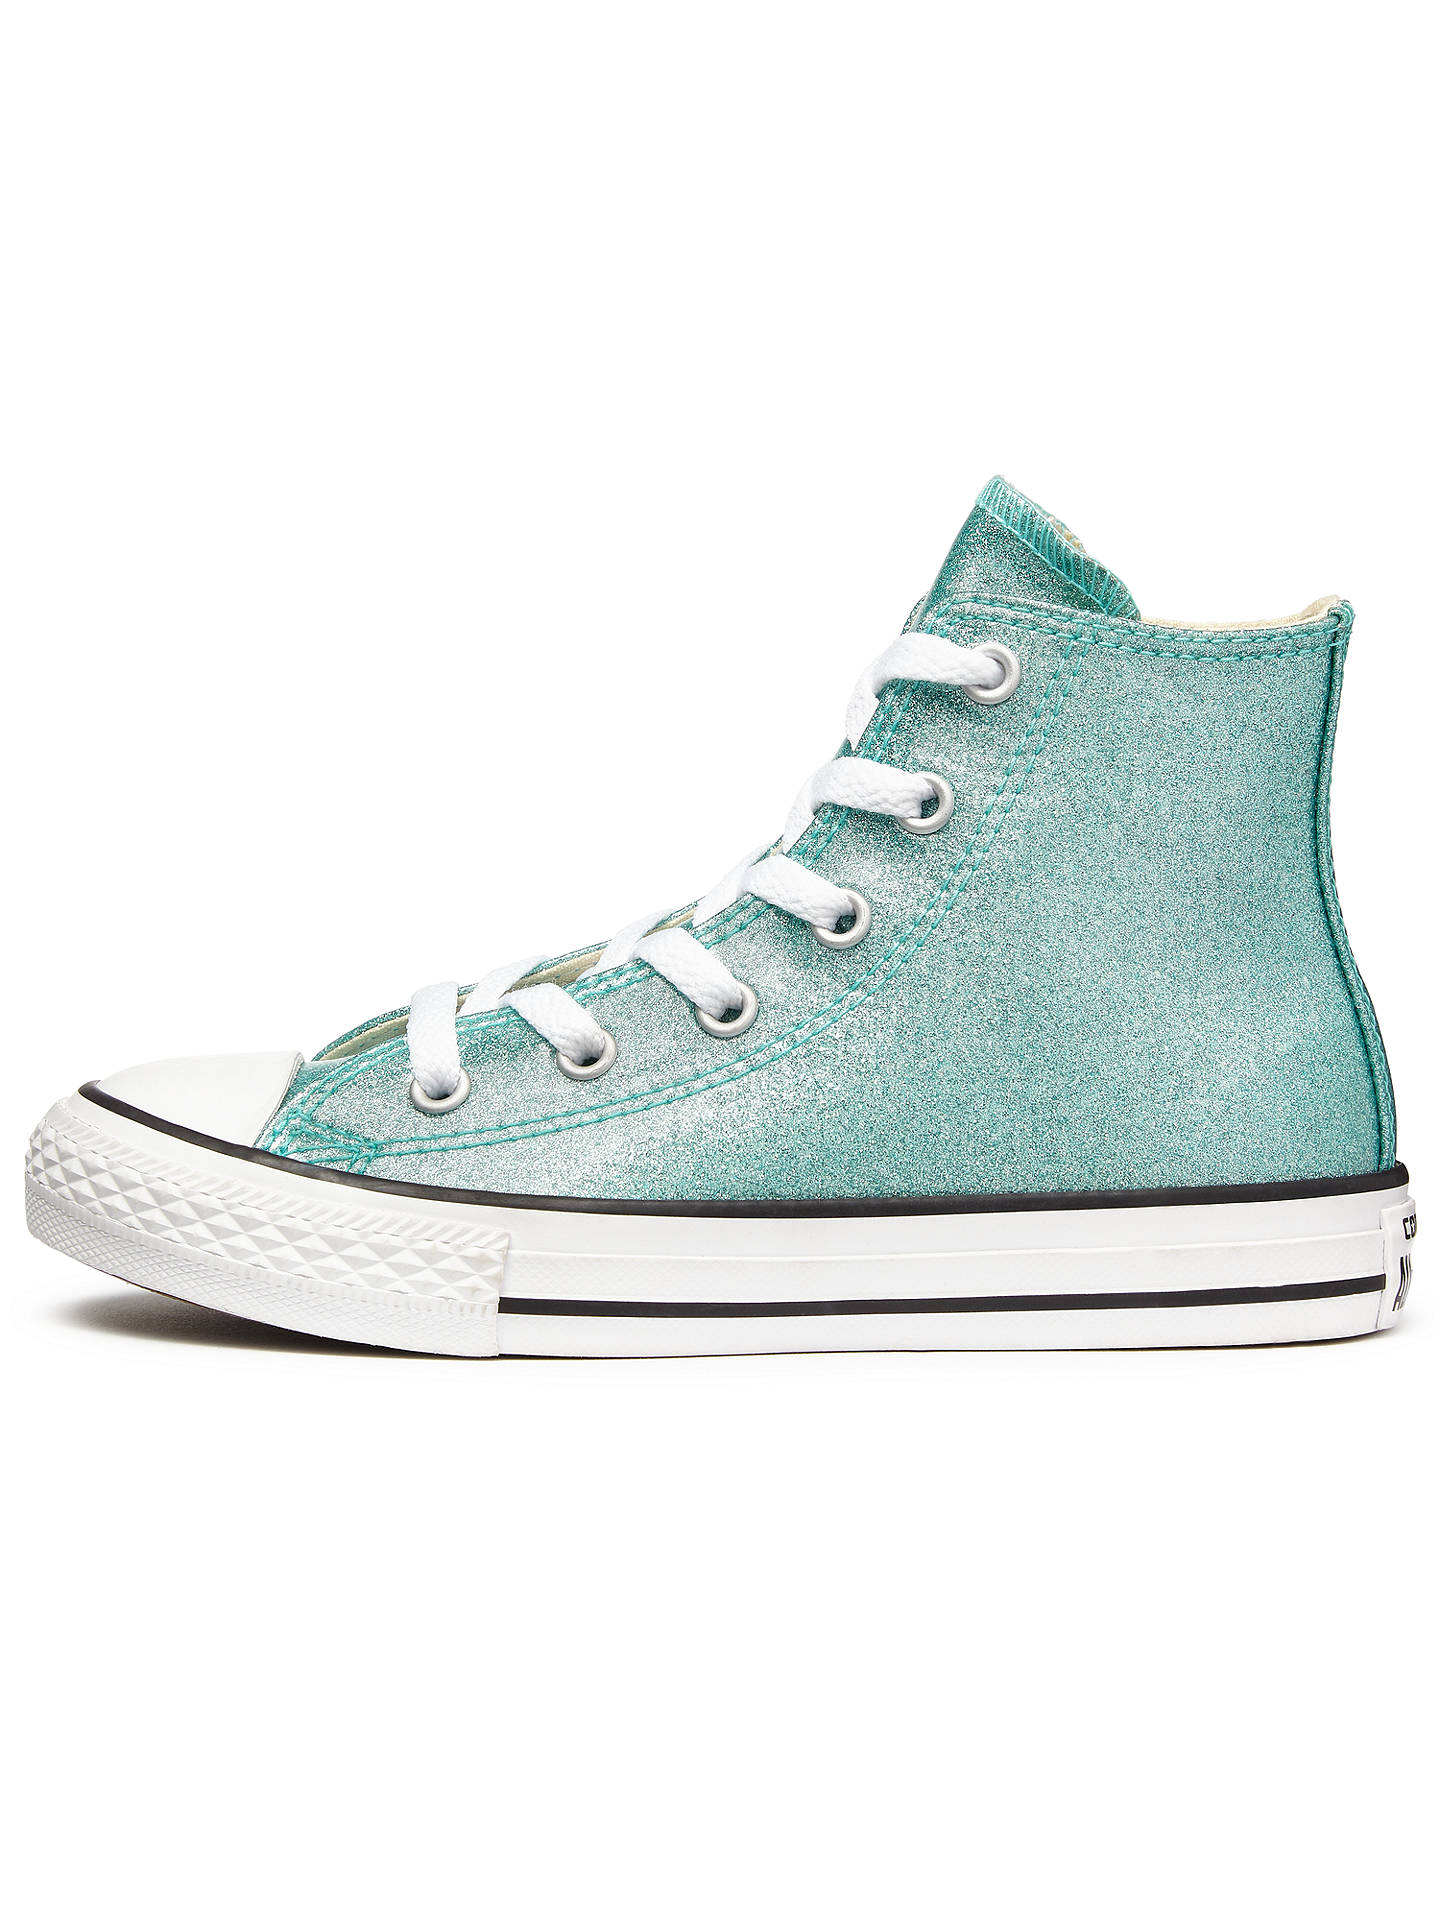 d18cfee2ee1fa4 Converse Children s Chuck Taylor All Star Hi-Top Glitter Trainers ...